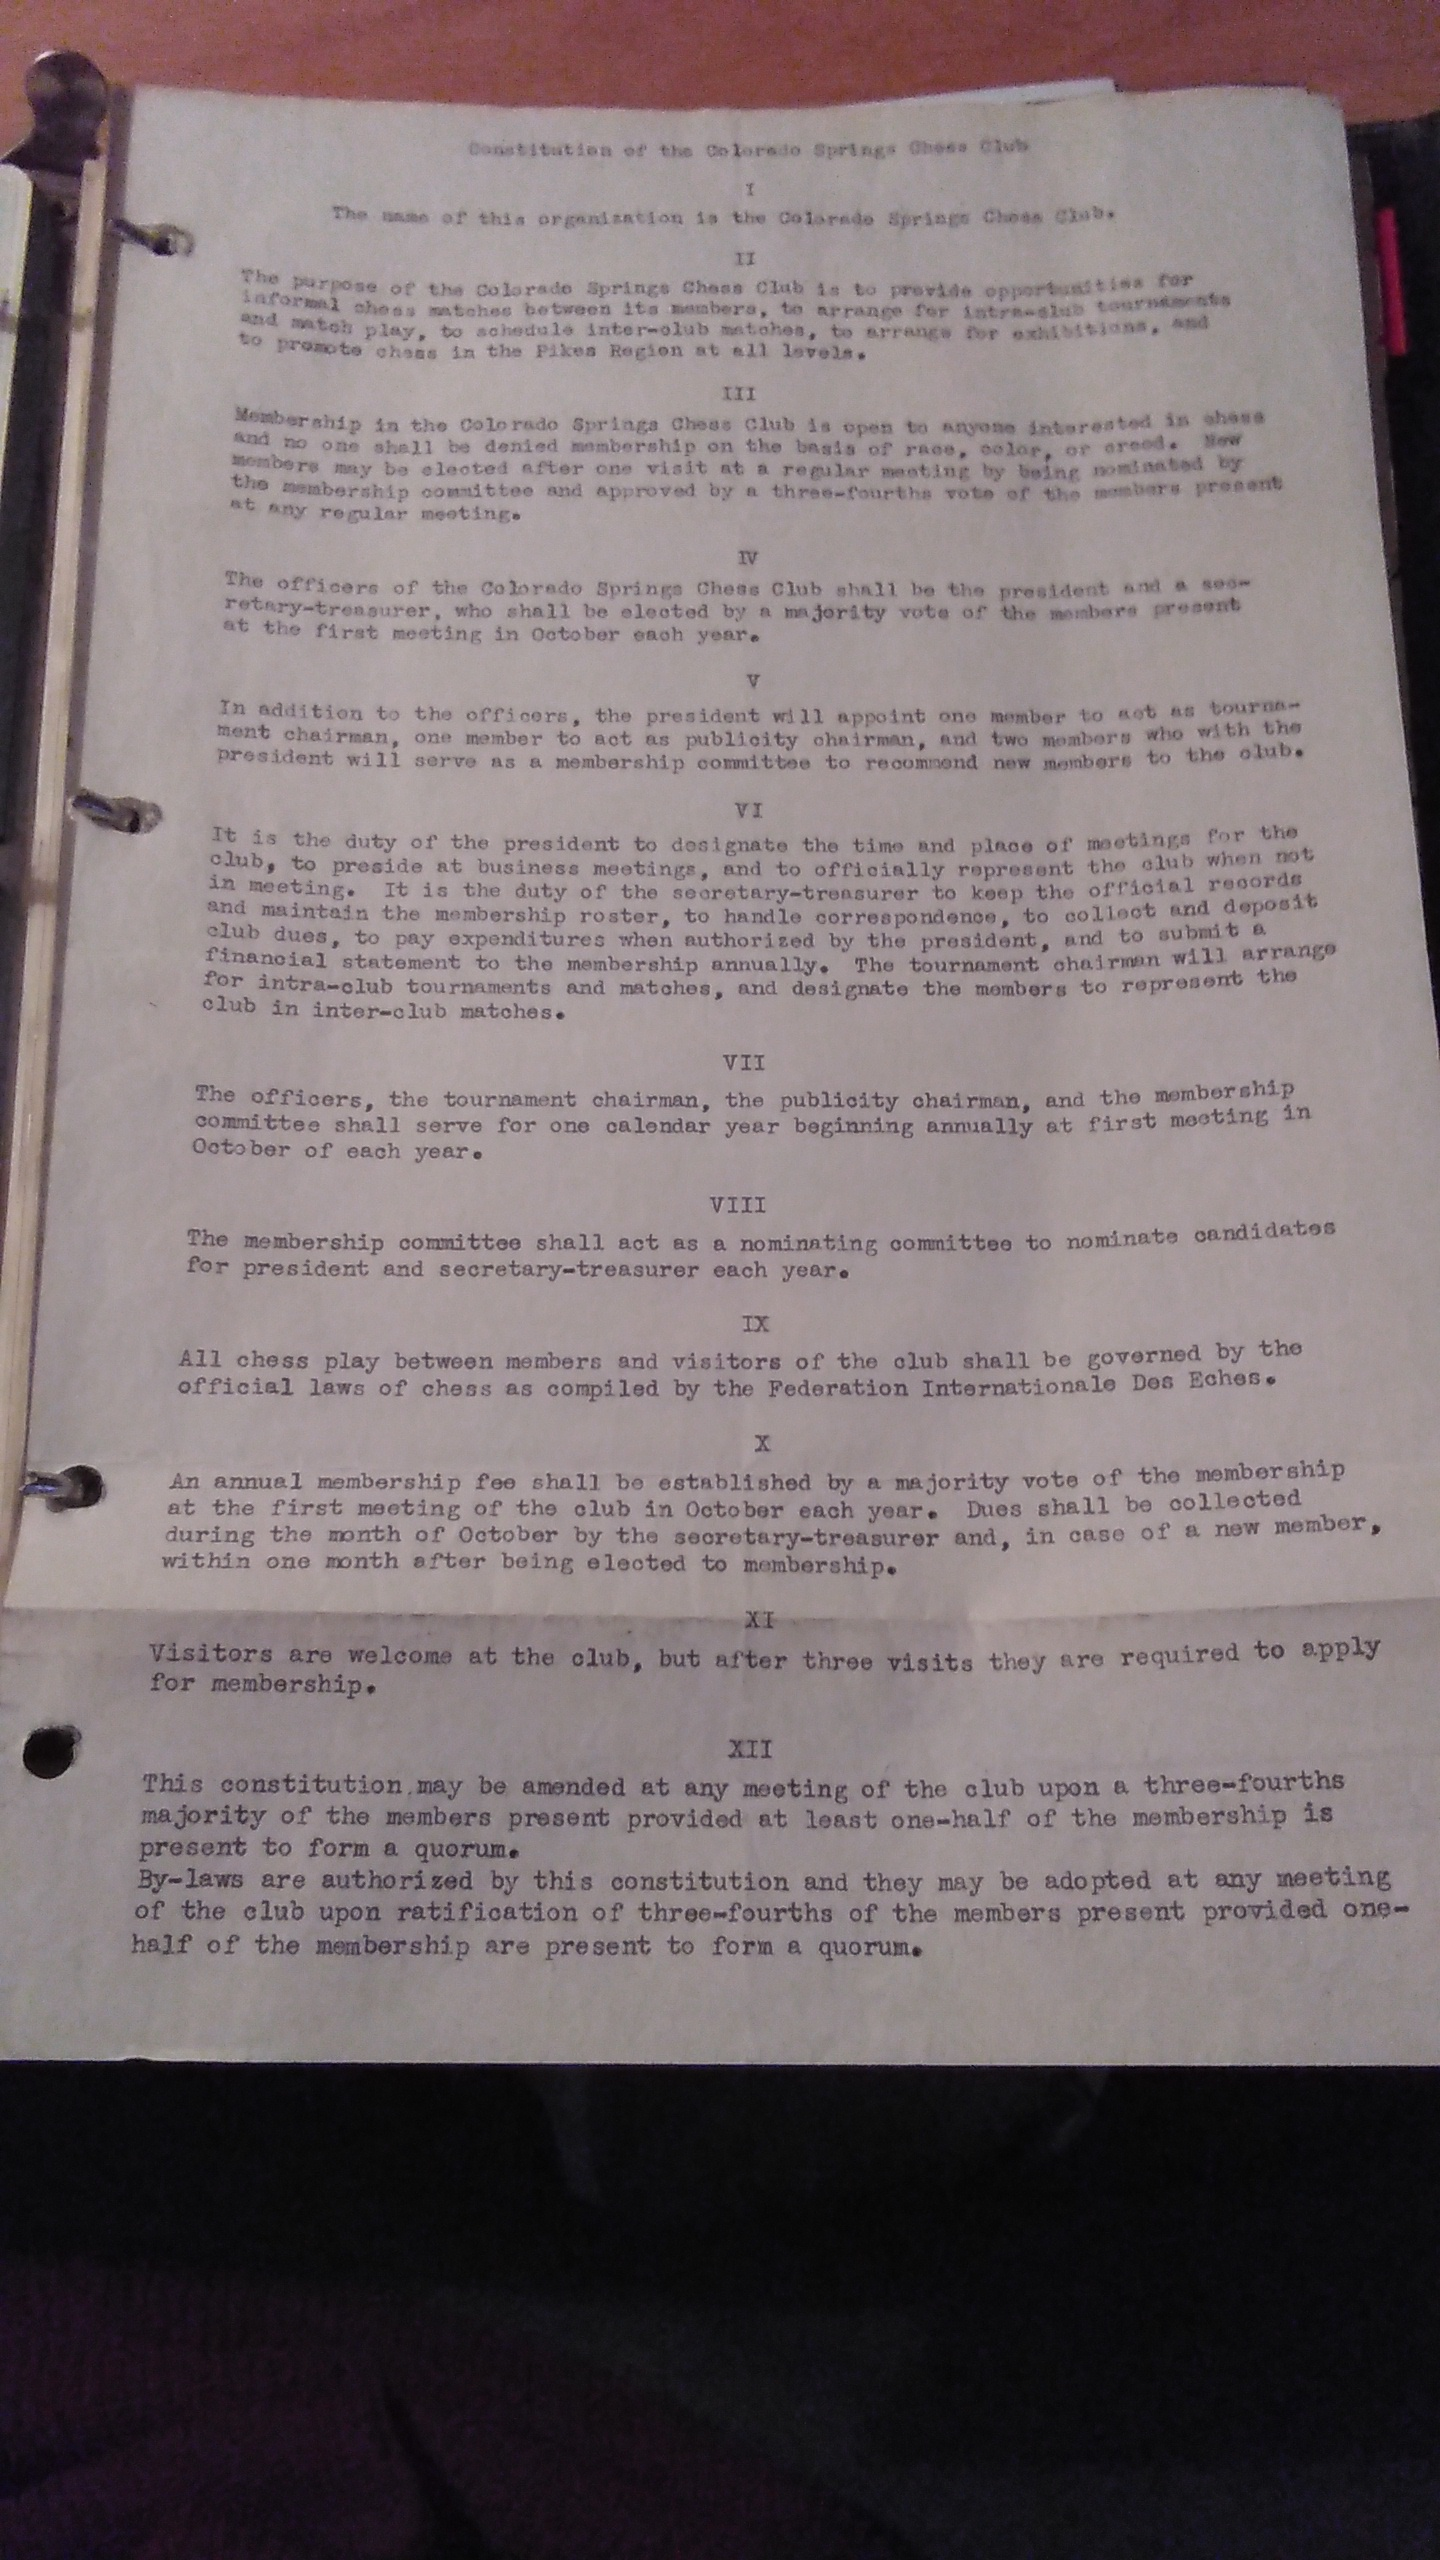 Old Constitution Of The Colorado Springs Chess Club